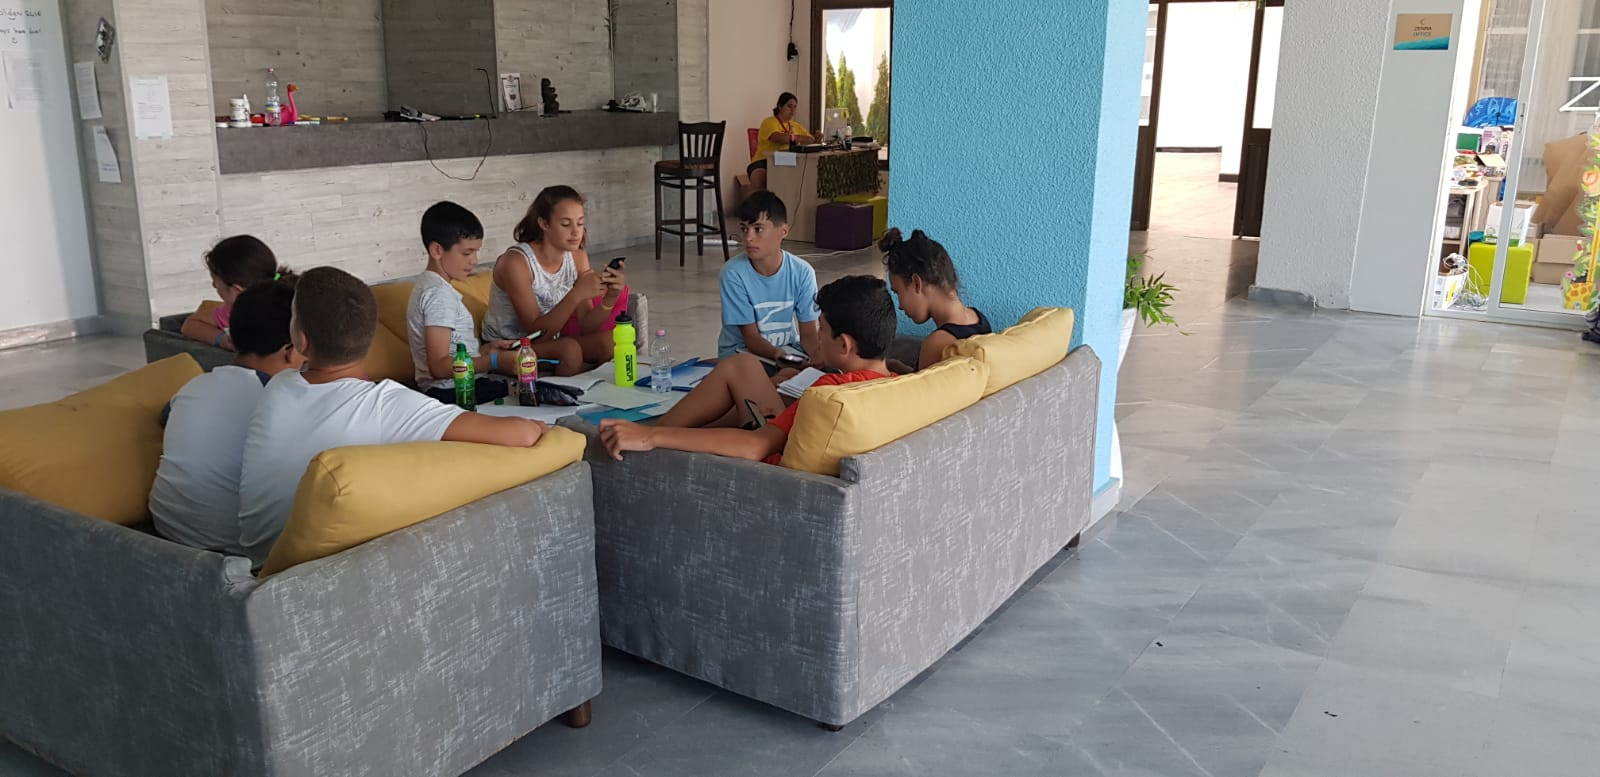 Z camp, Day 20 -in the foyer of the base - 8 children sit on the couch and talk